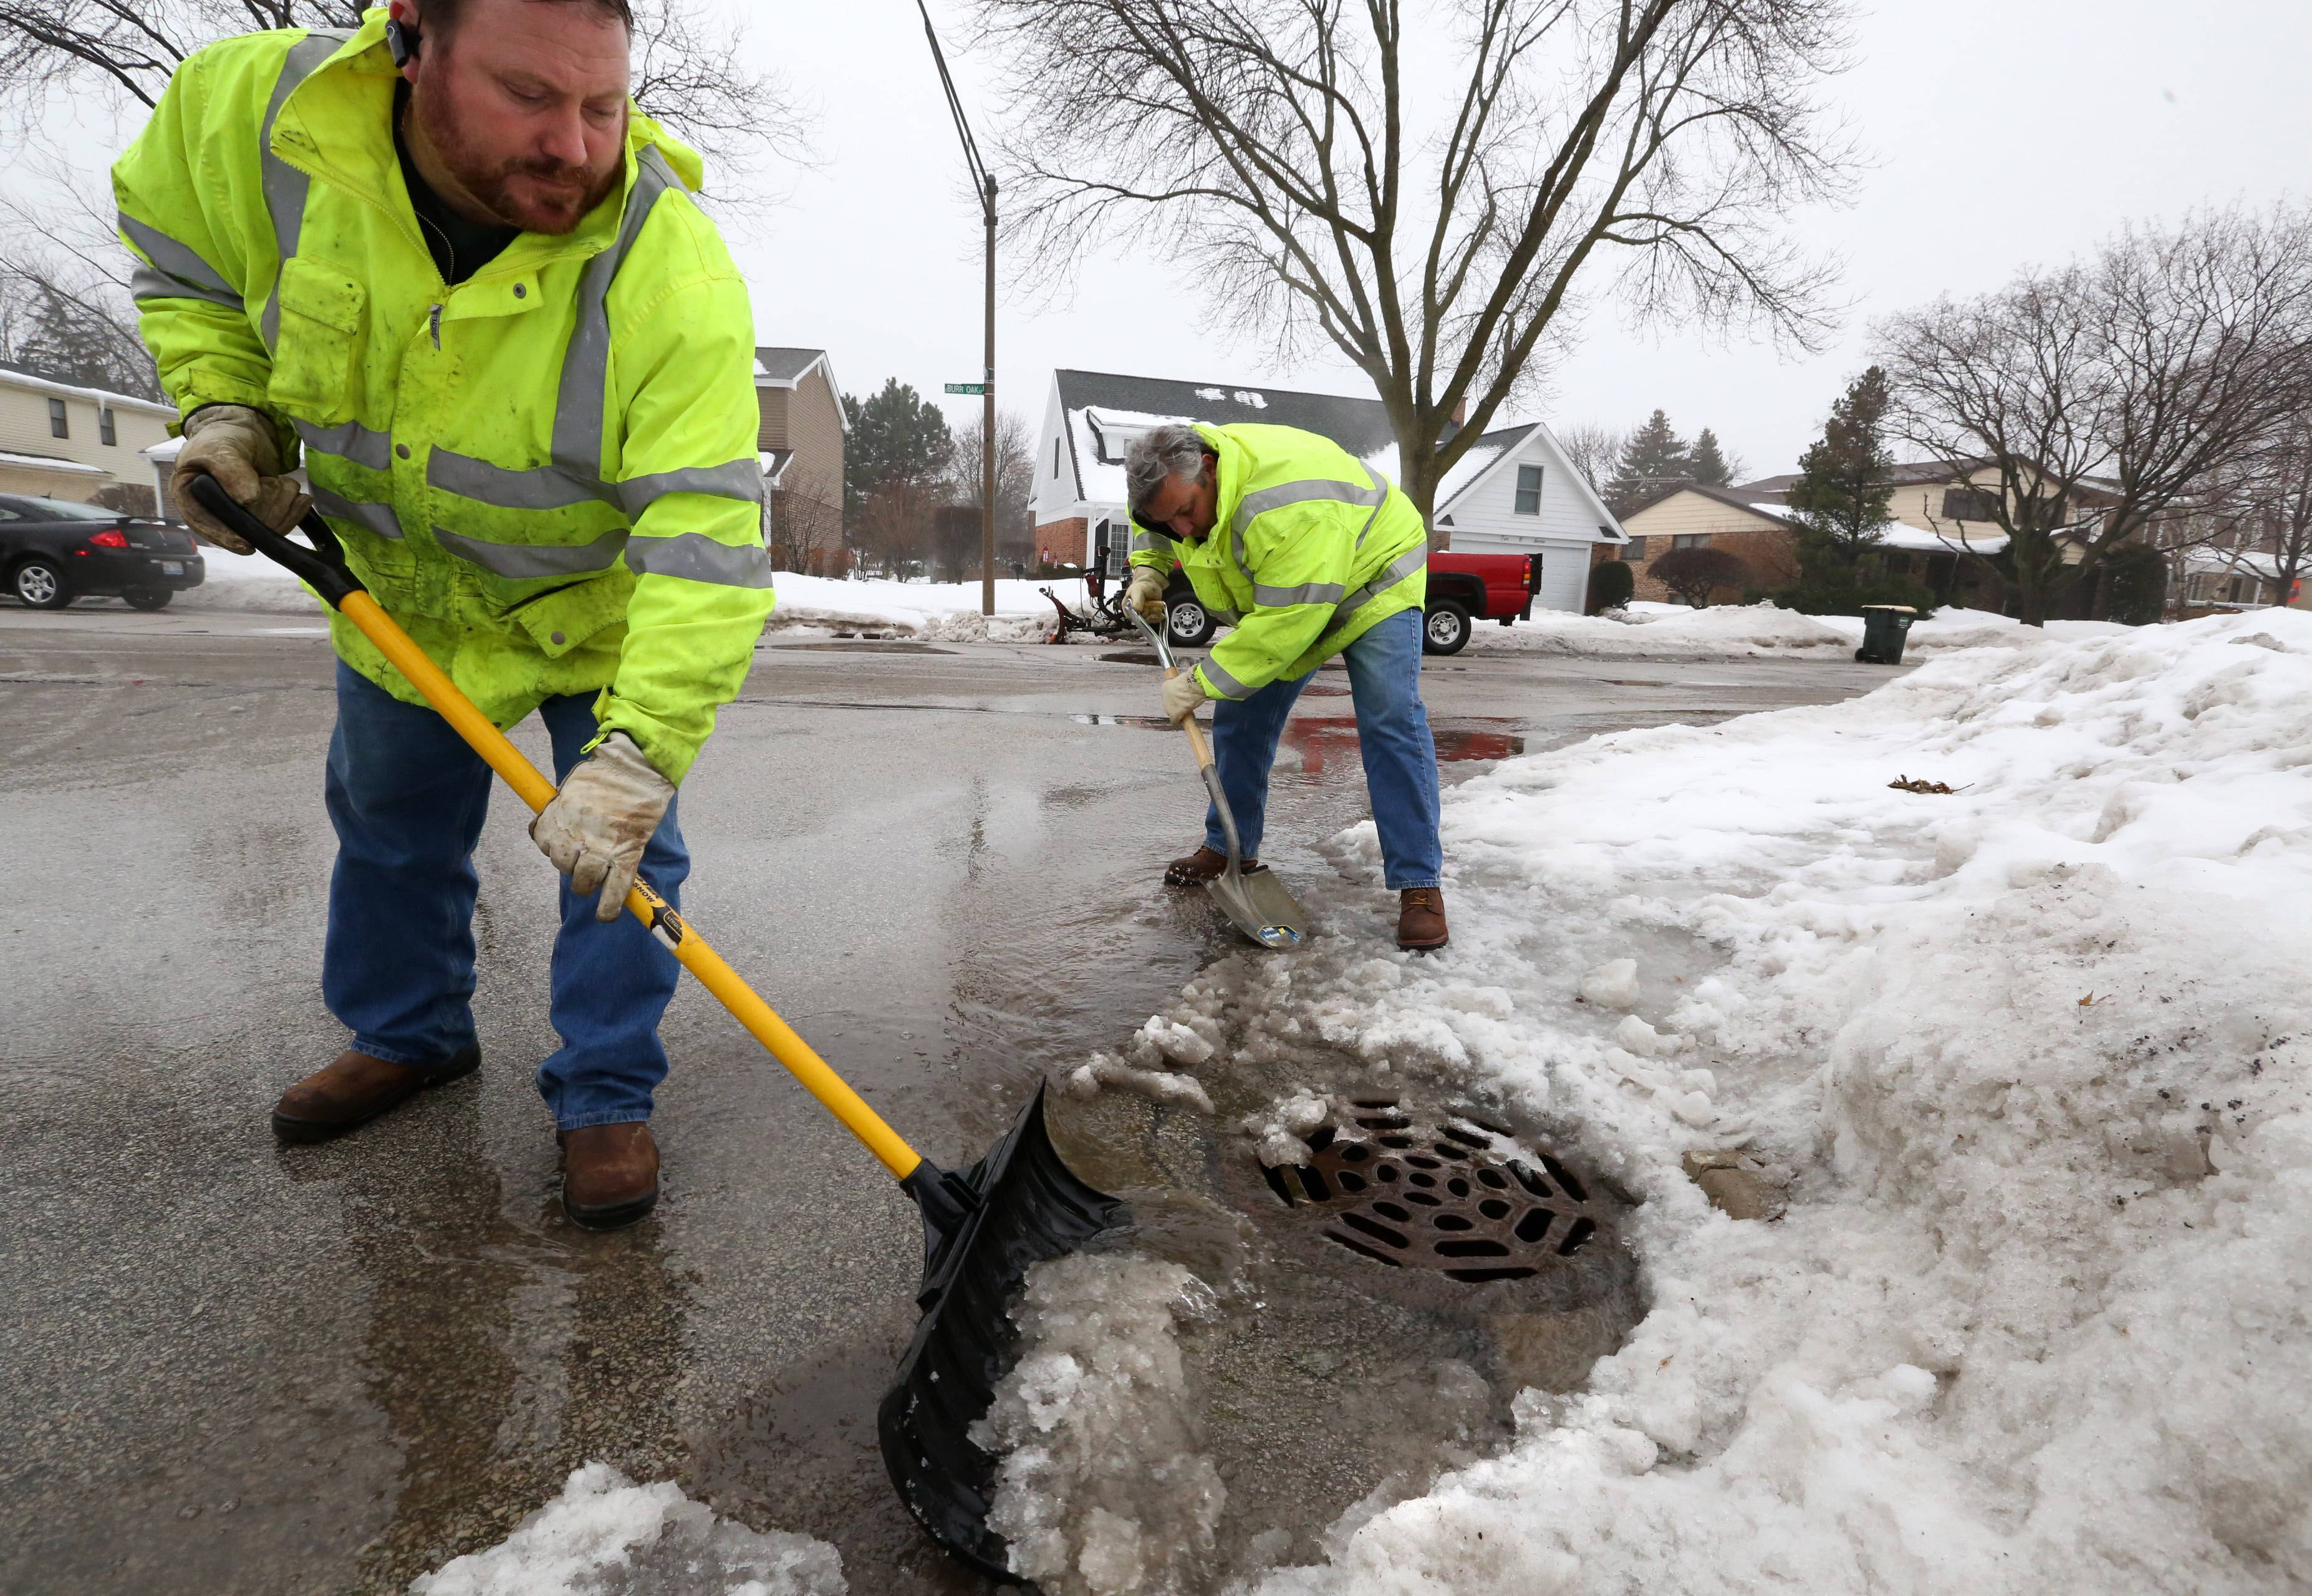 Arlington Heights sewer and streets workers Jim Schmid and Shawn McAlpin clear a street drain in the Northgate subdivision on Thursday in Arlington Heights.